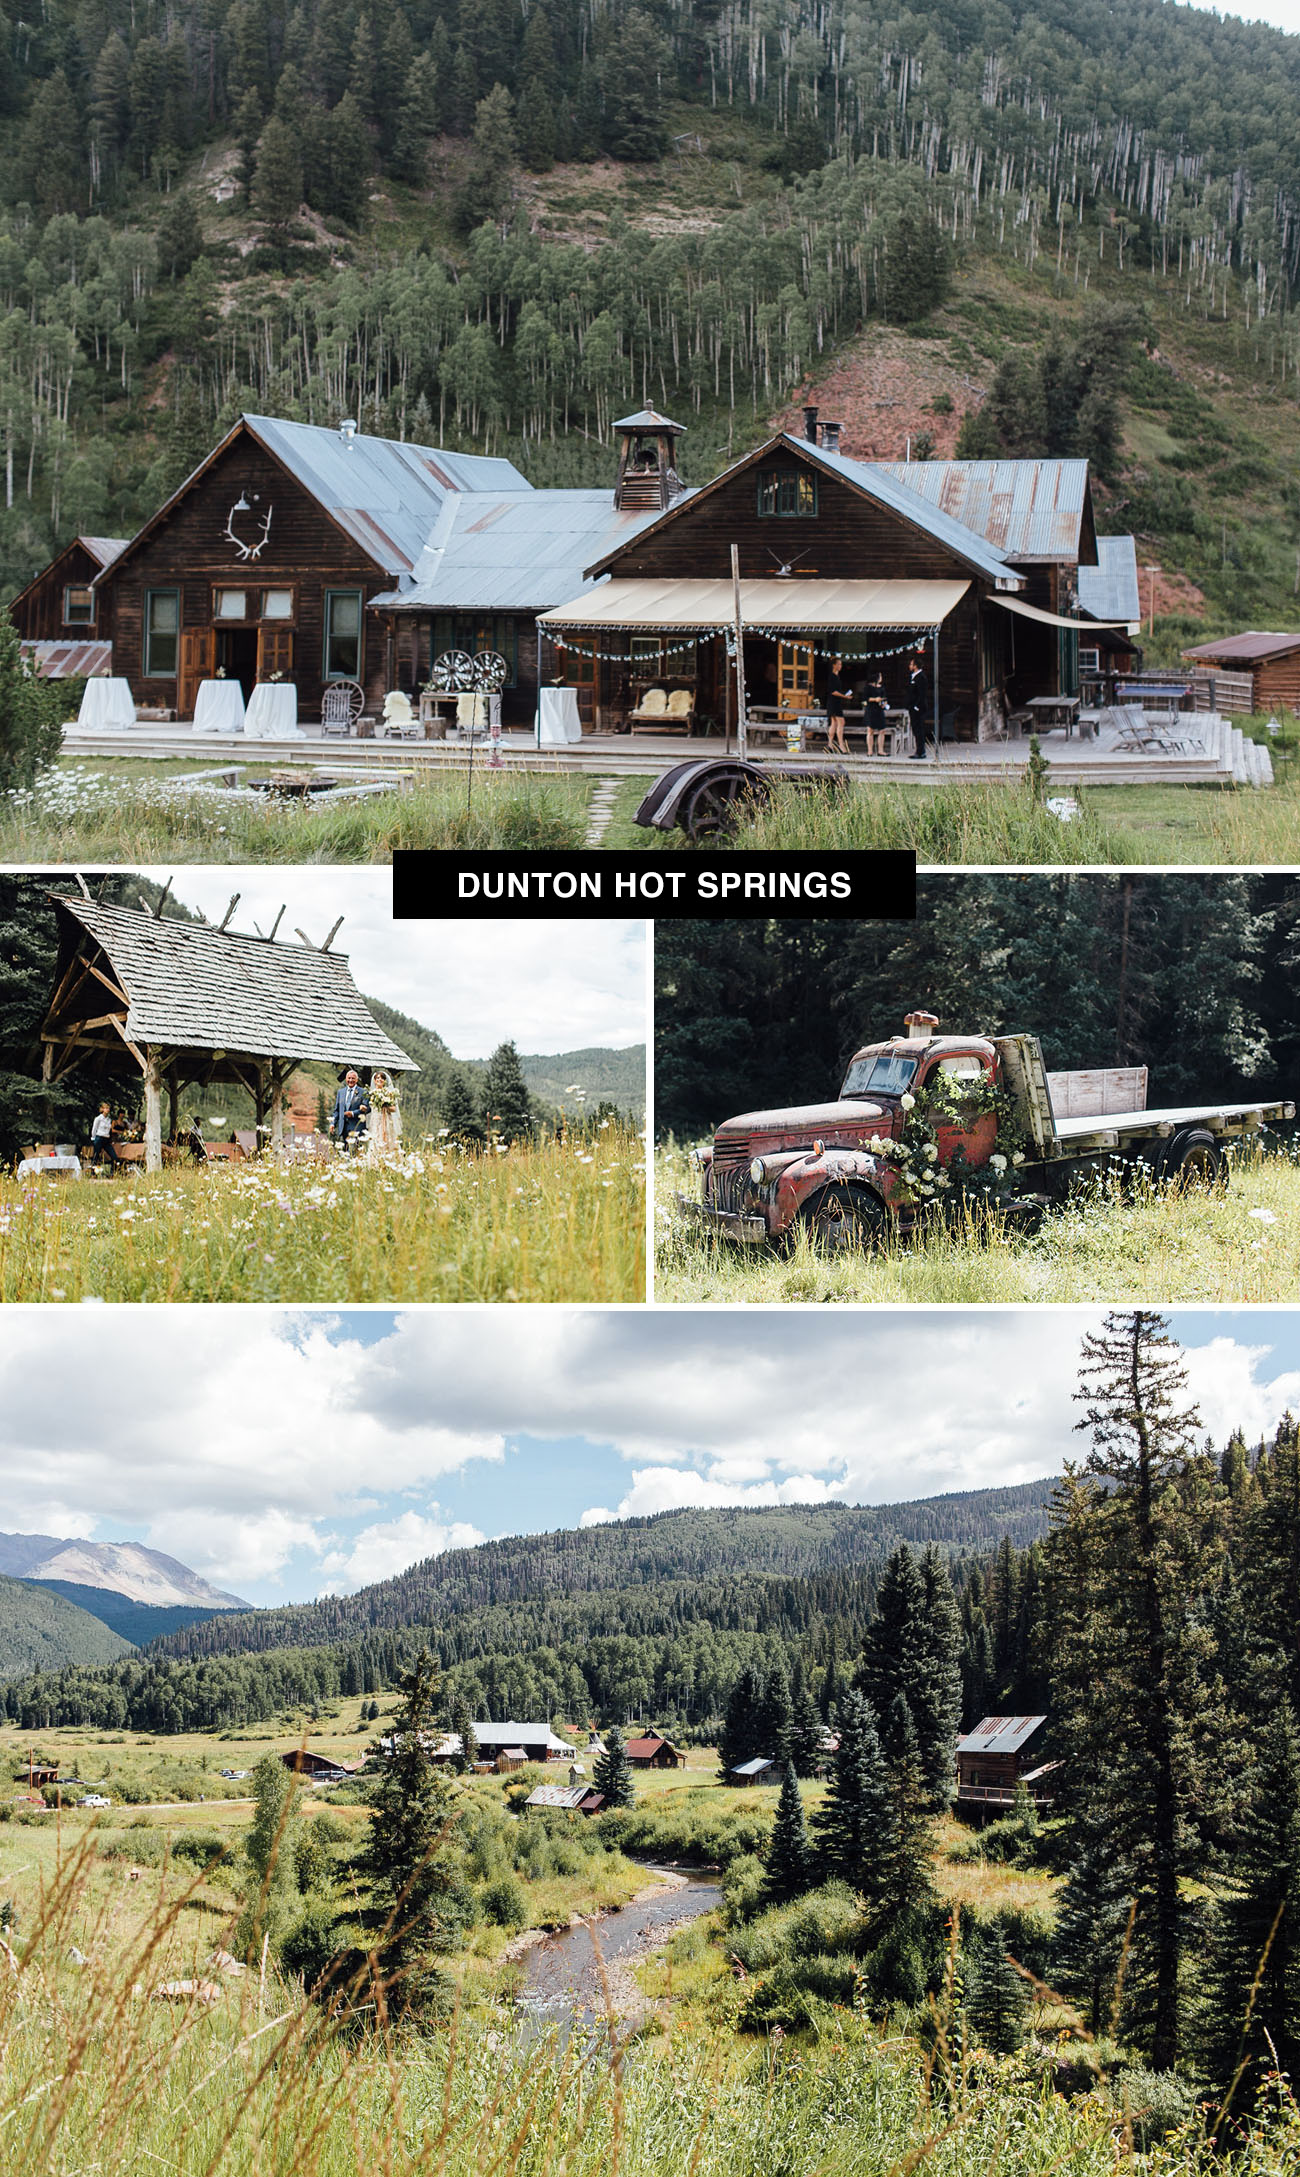 Dunton Hot Springs wedding venue in Colorada where you can take over the town for your wedding